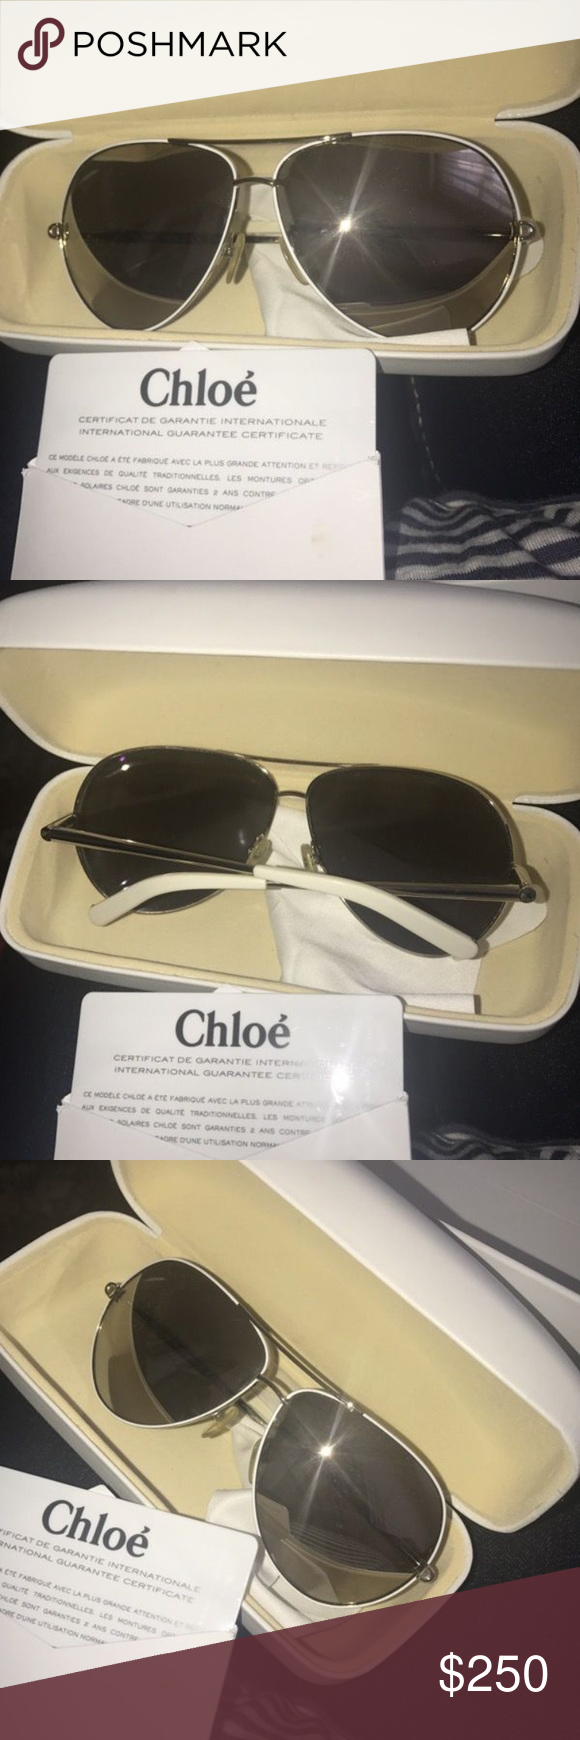 4be5da2acbbb AUTHENTIC CHLOE SUNGLASSES WITH CASE Used twice minimal sign of use Chloe  Accessories Glasses